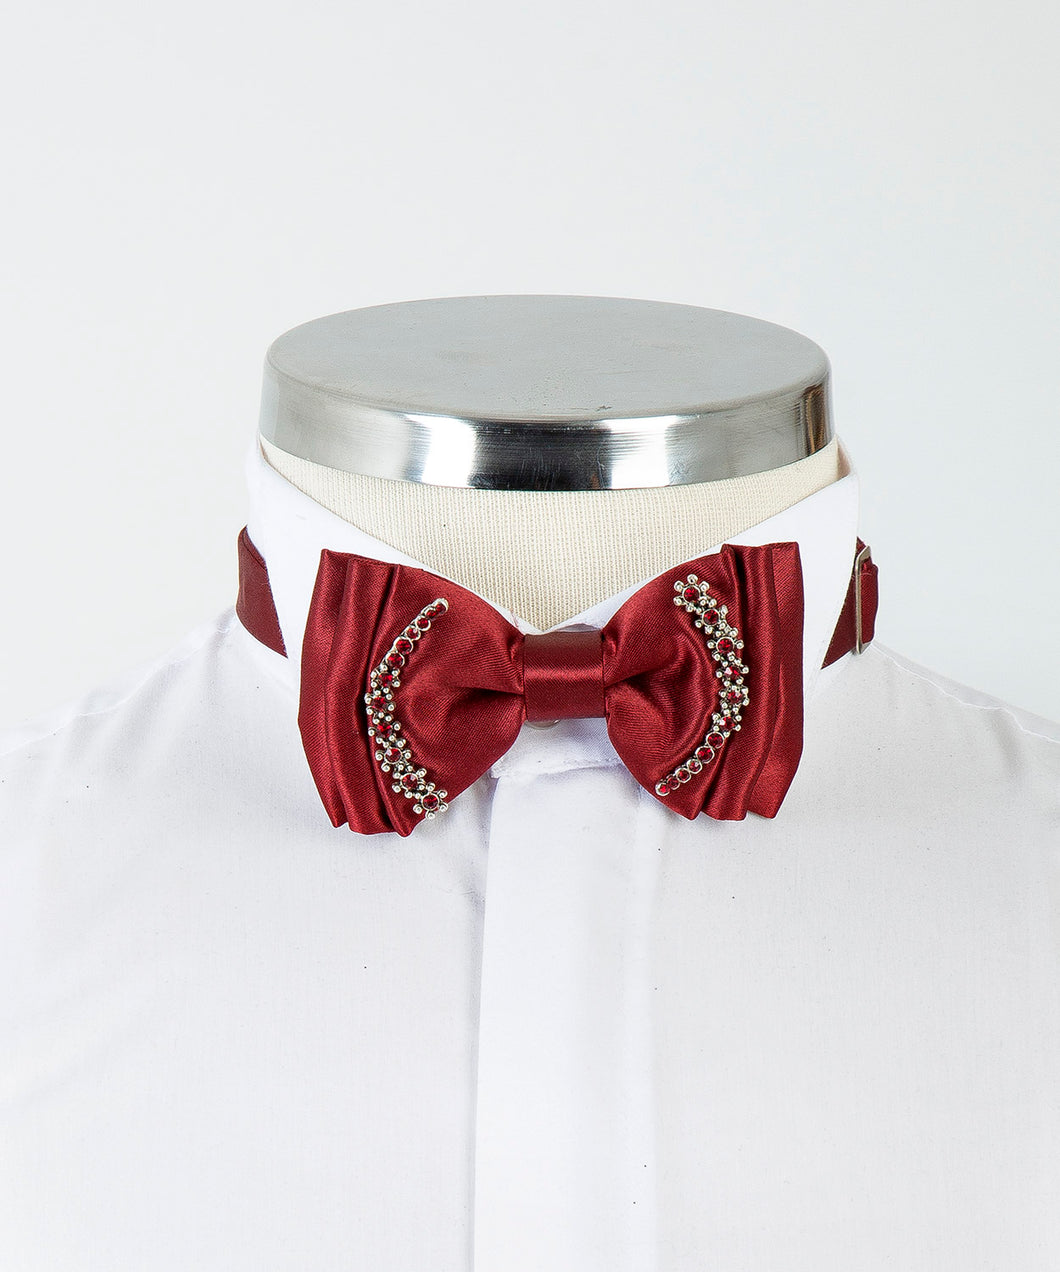 Ornamental Bow Tie - Claret Red